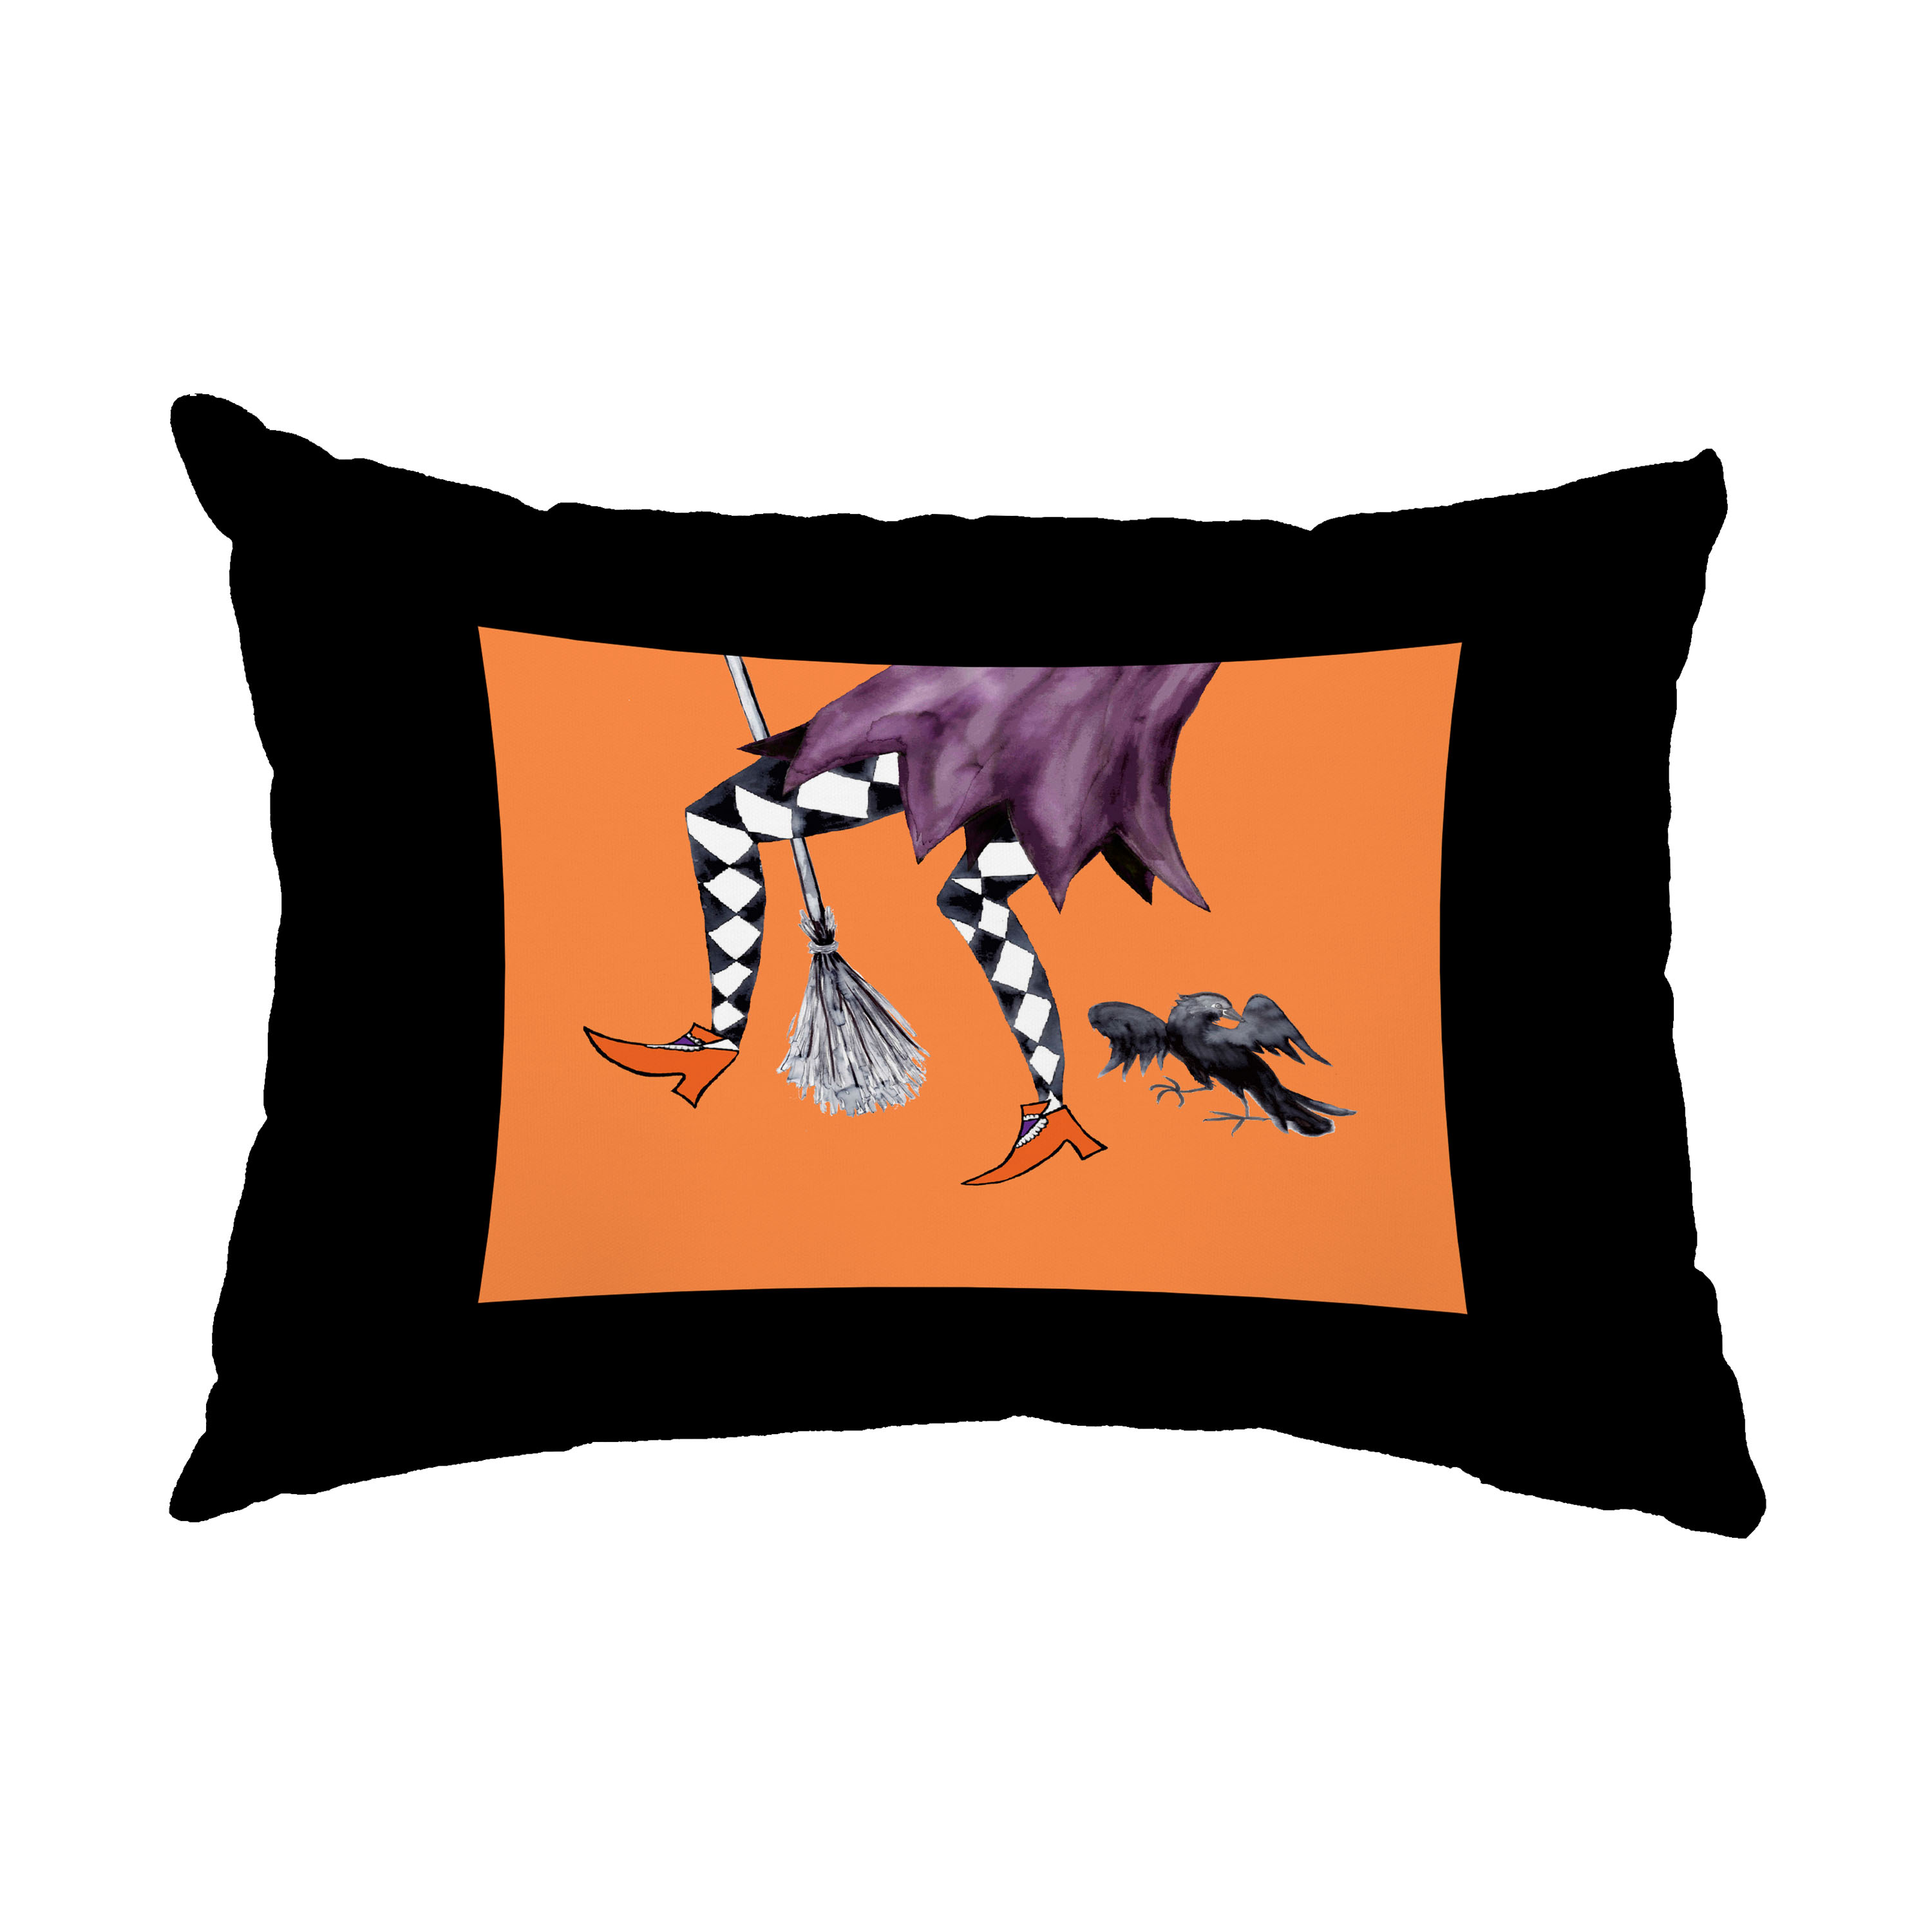 Fly Away Witch 14x20 Inch Orange Halloween Print Decorative Outdoor